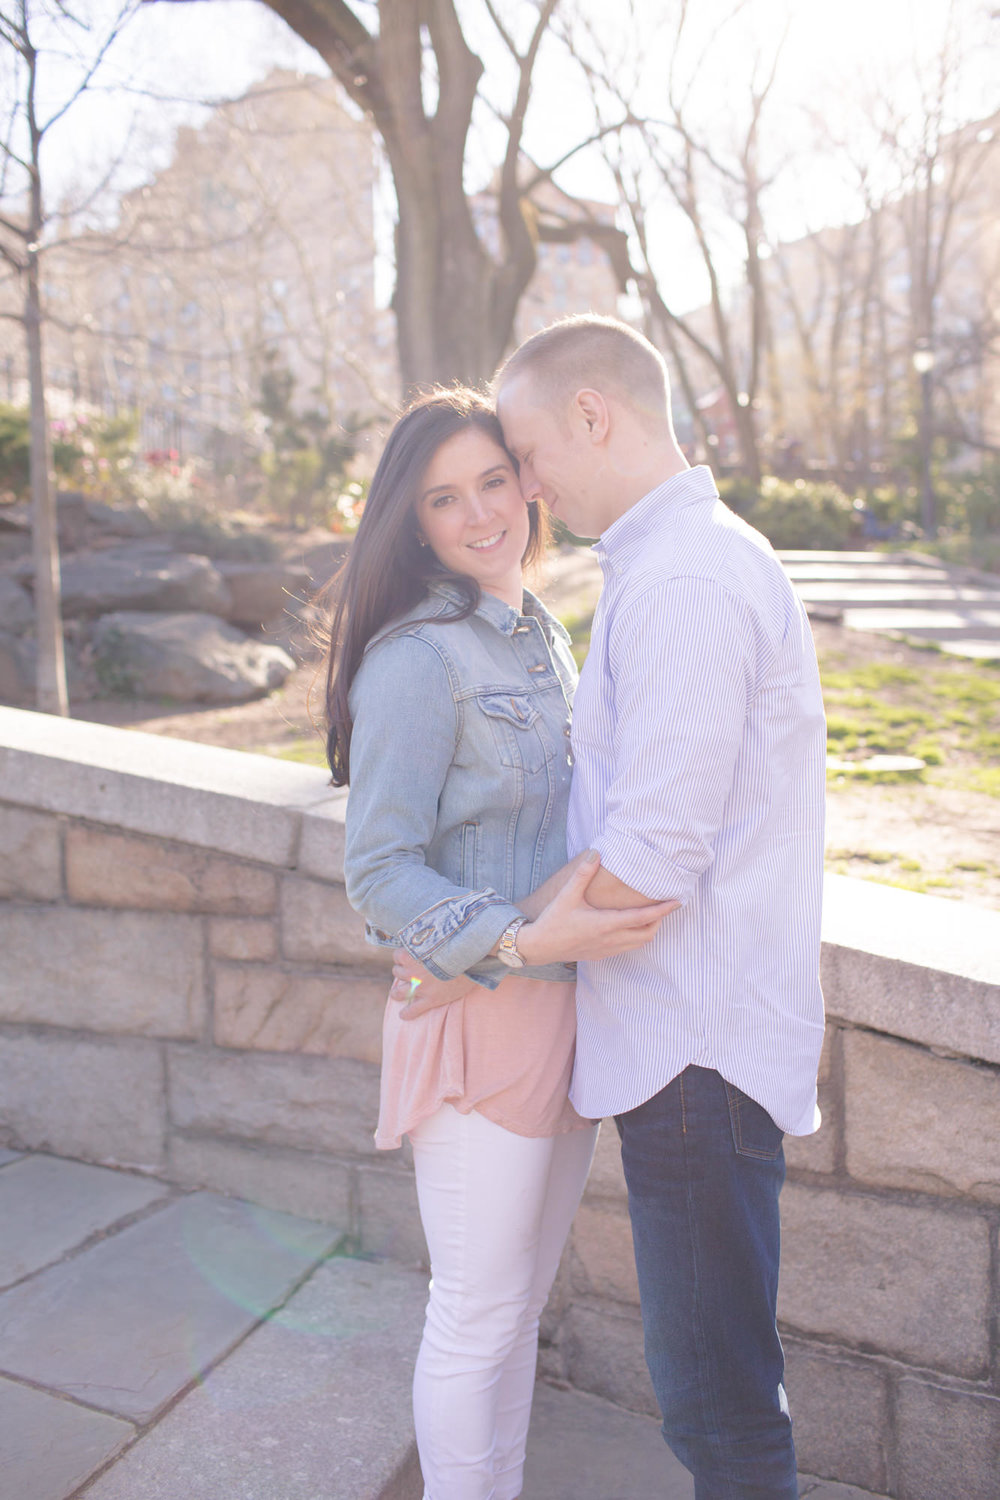 Alex & Alec - New York spring engagement